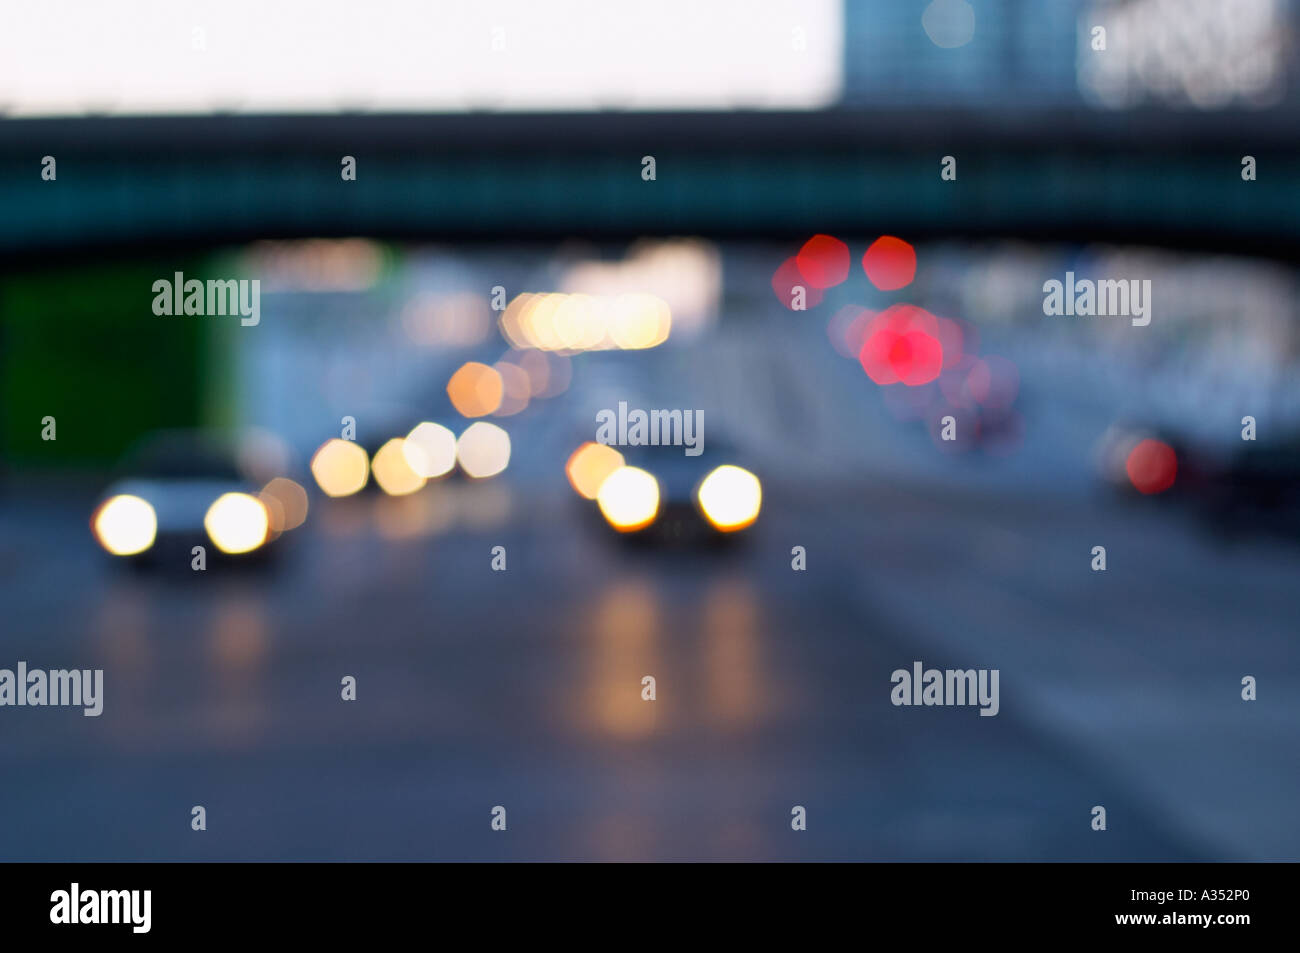 Blurred image of city highway traffic at dusk. Stock Photo